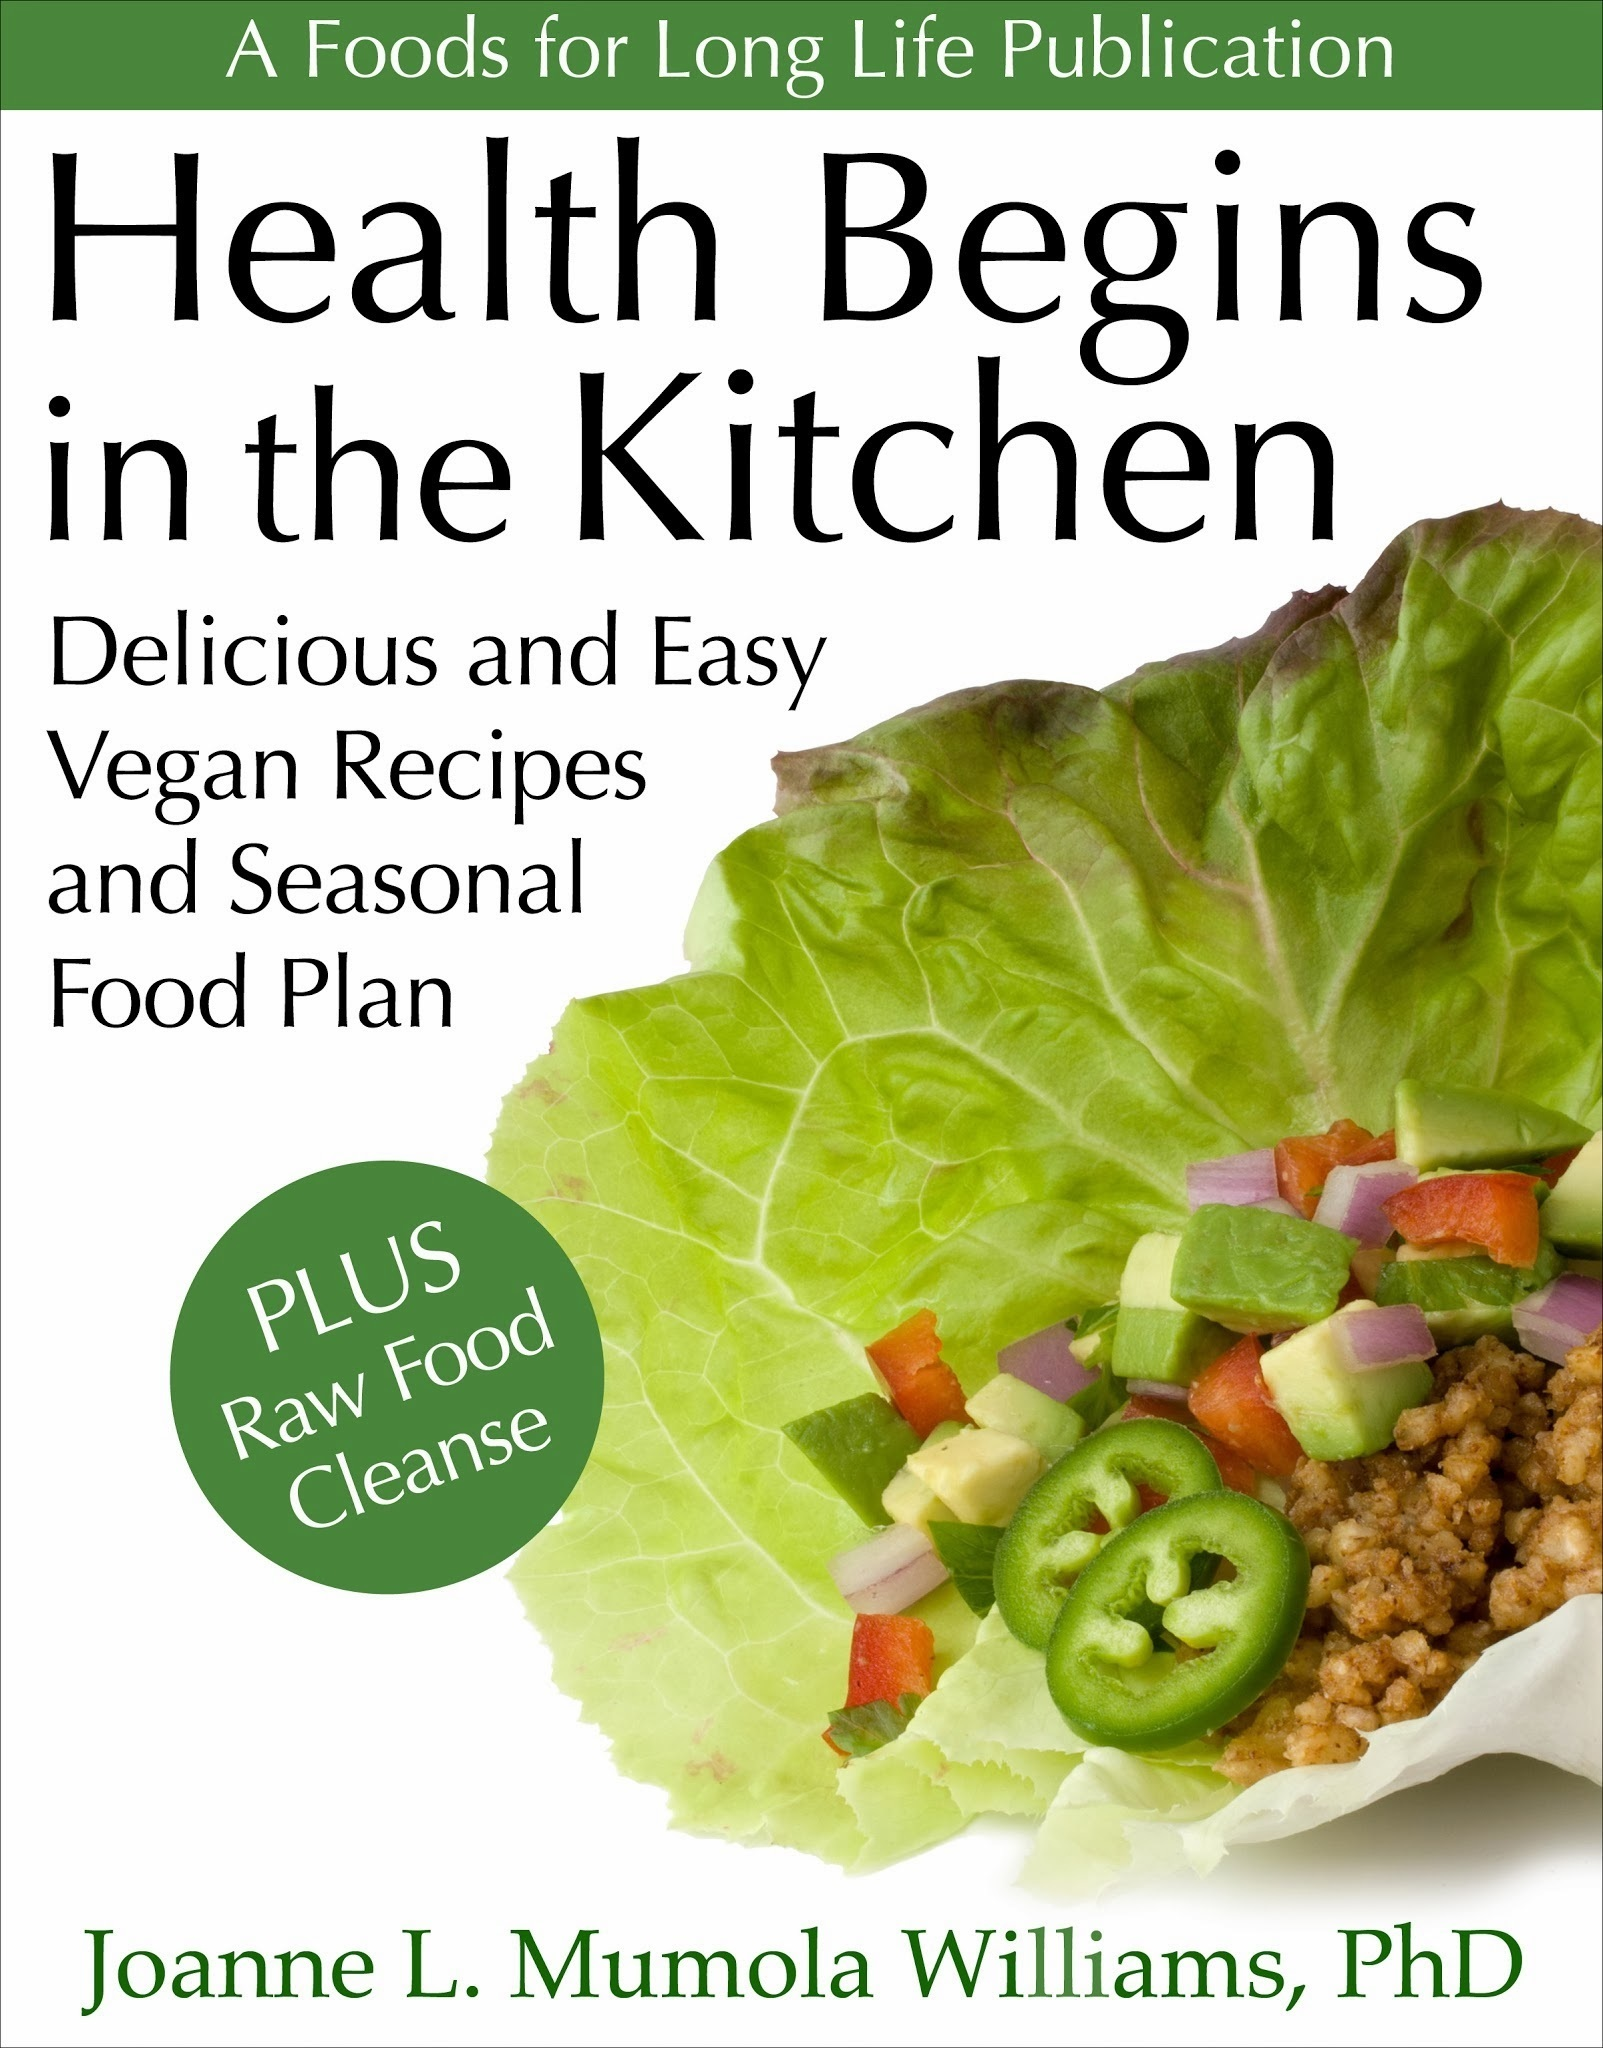 No Need To Gain Weight Over The Holidays! Download Health Begins In The Kitchen For Delicious Vegan And Gluten-Free Thanksgiving Recipes At Special Holiday Pricing